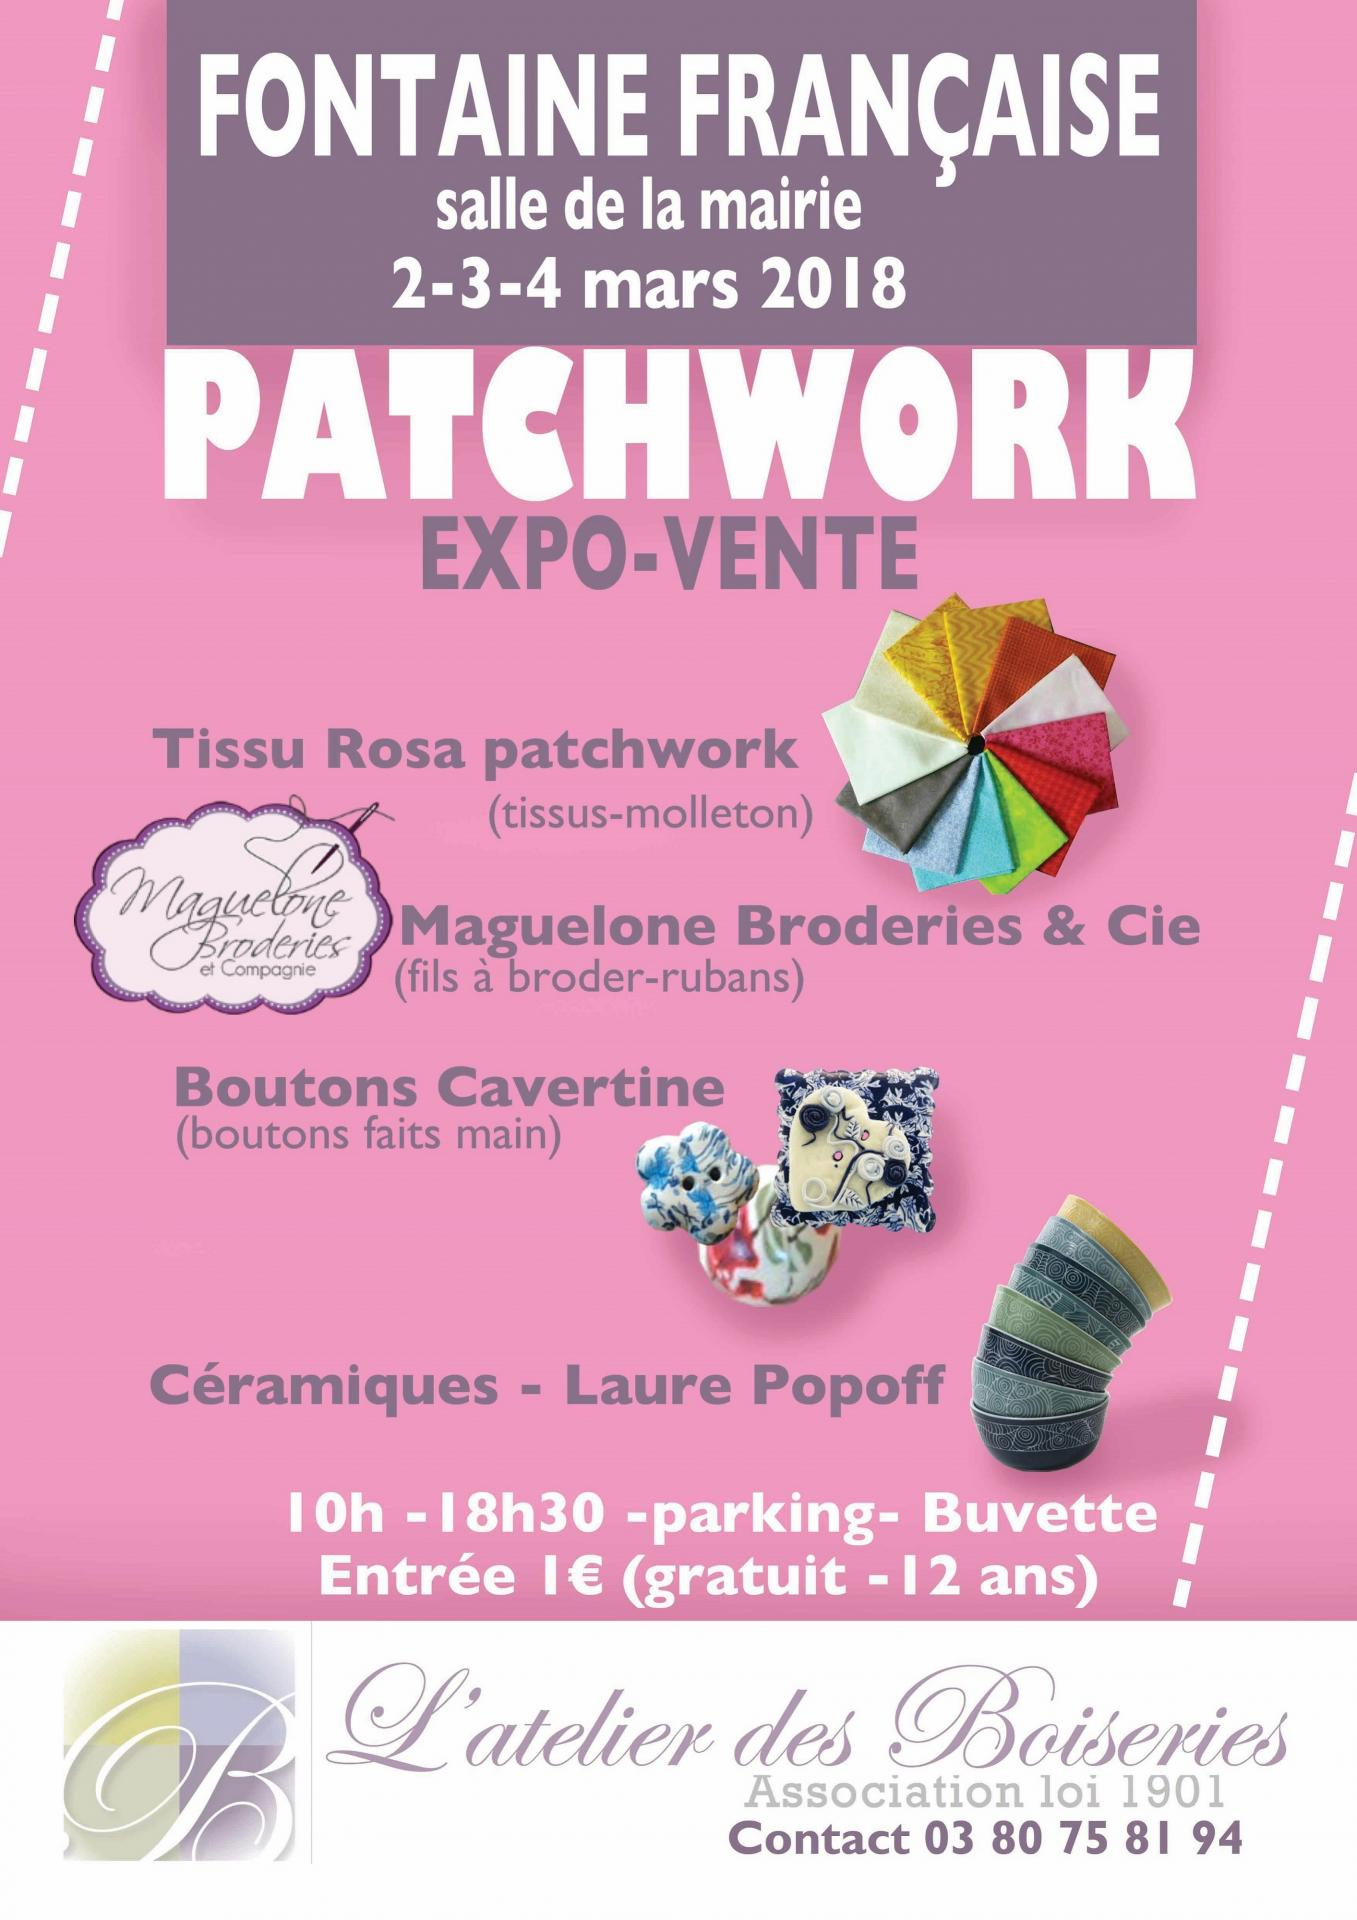 Affiche expo broderie fontaine francaise 2 3 4 mars 2018